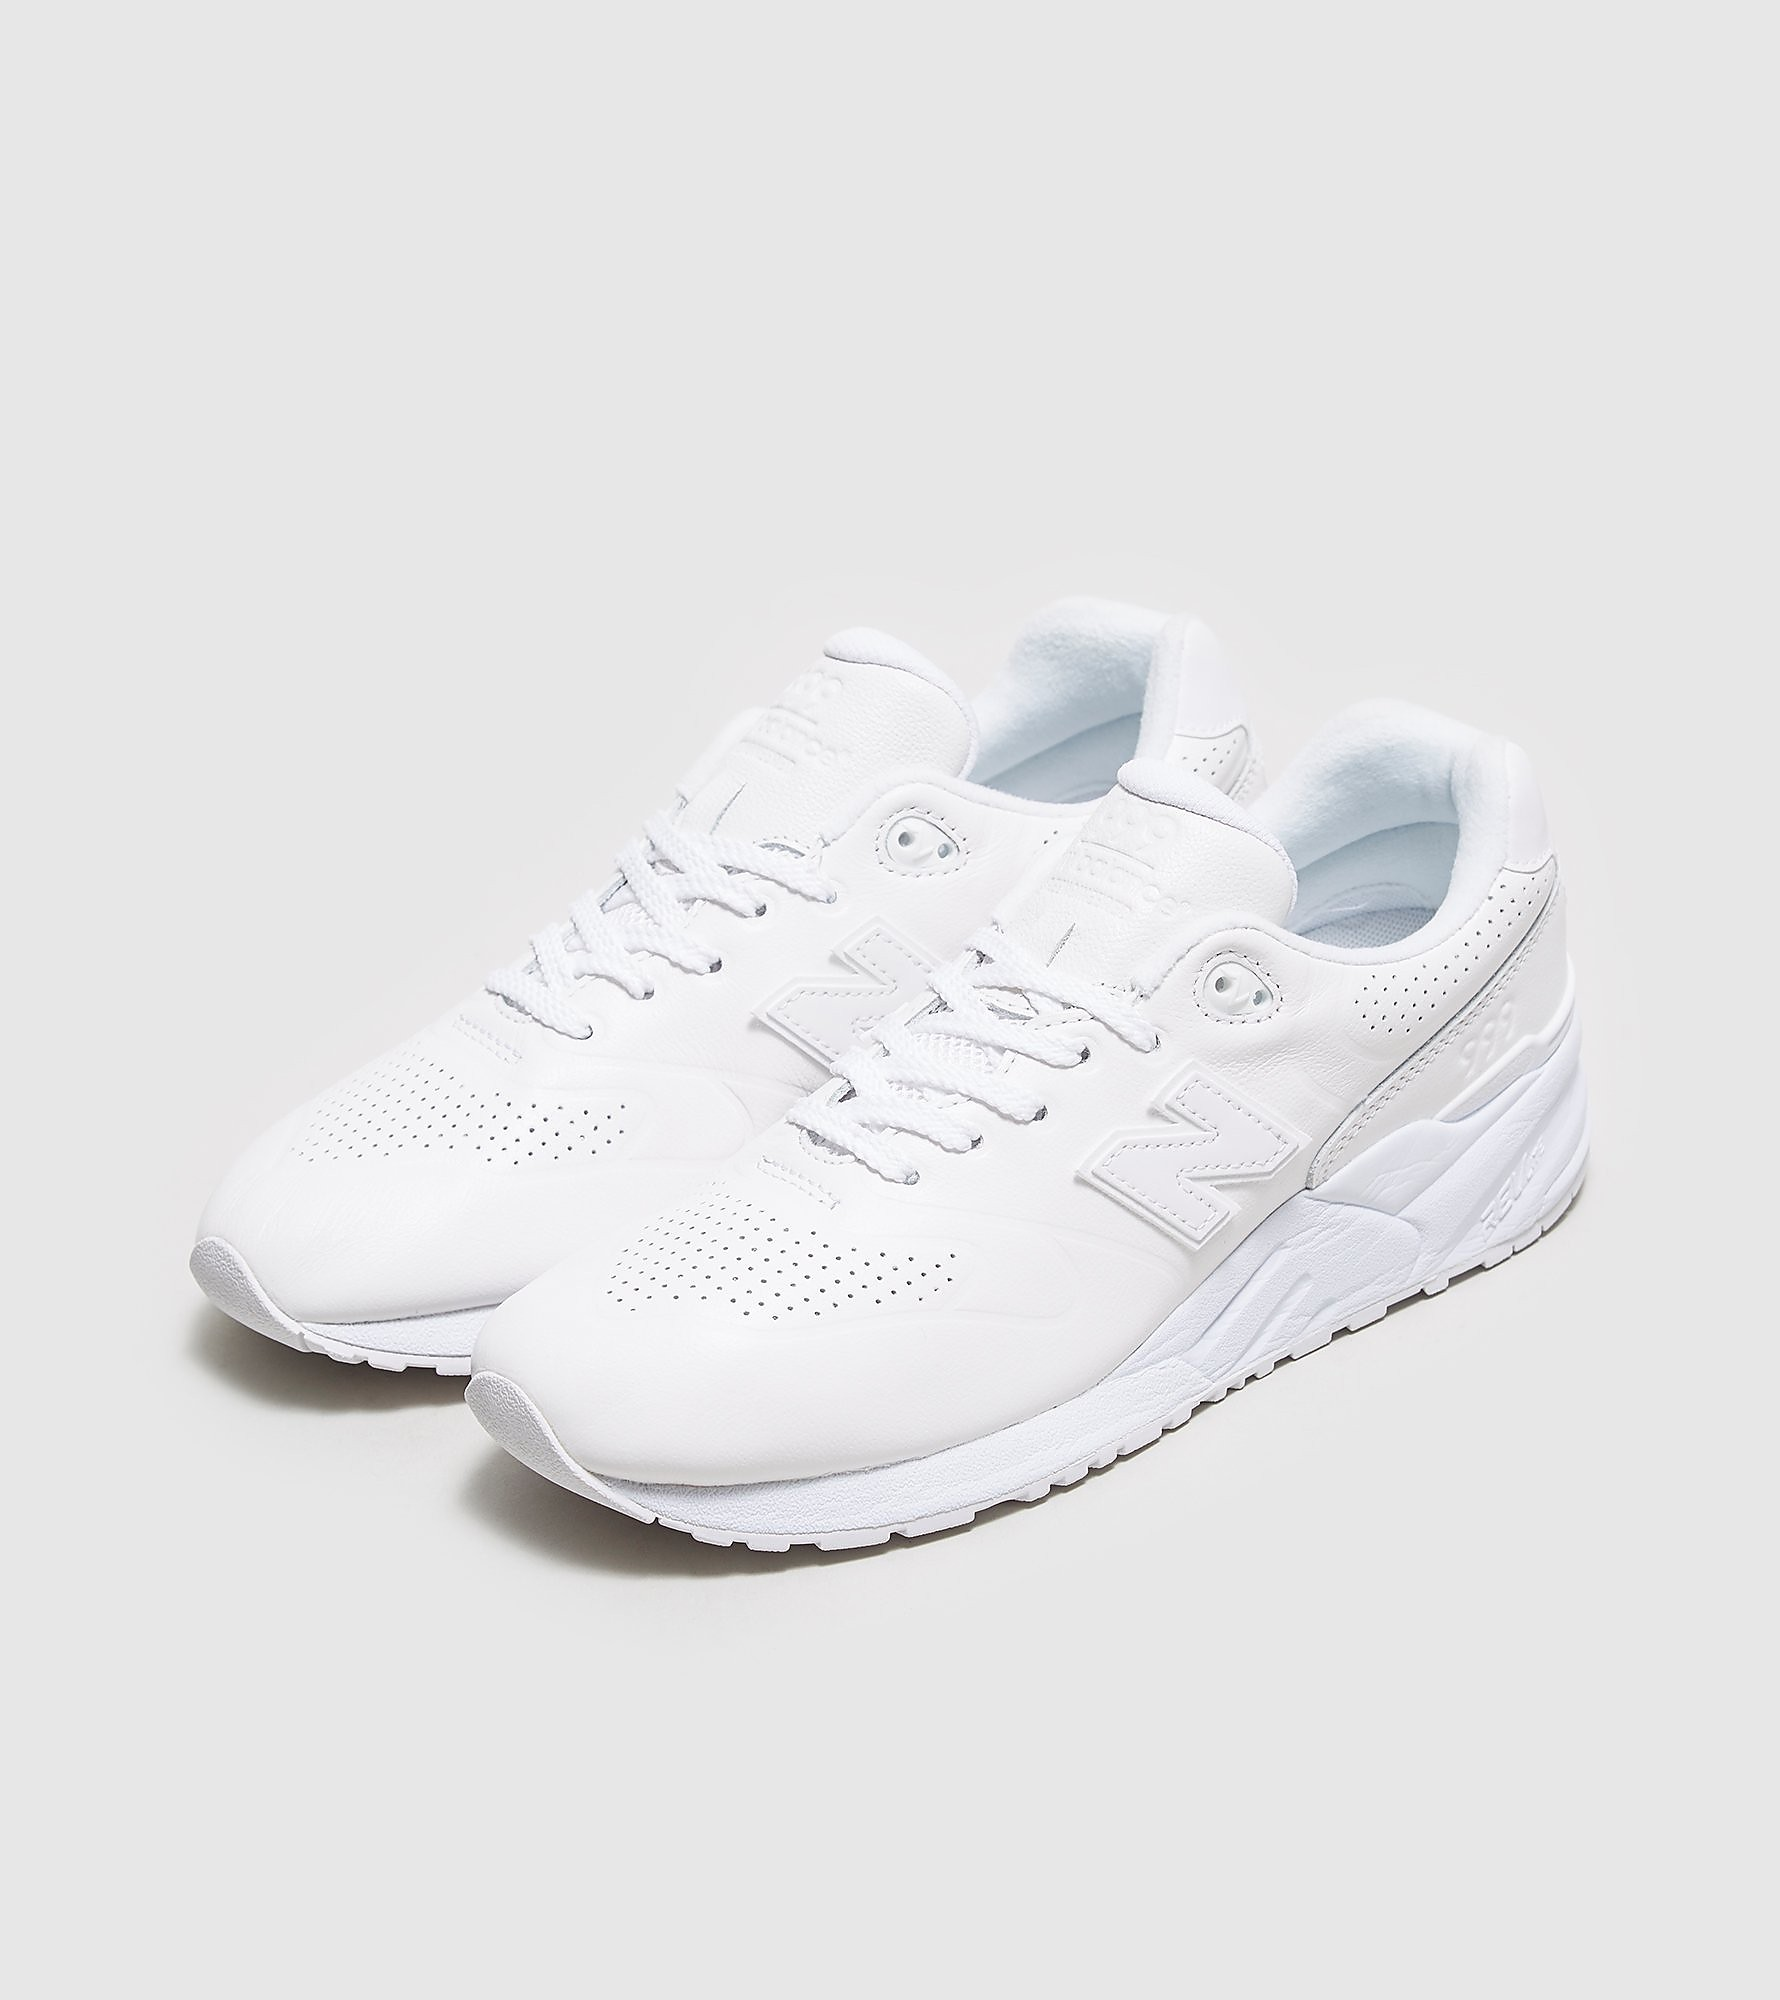 New Balance 999 Deconstructed Leather